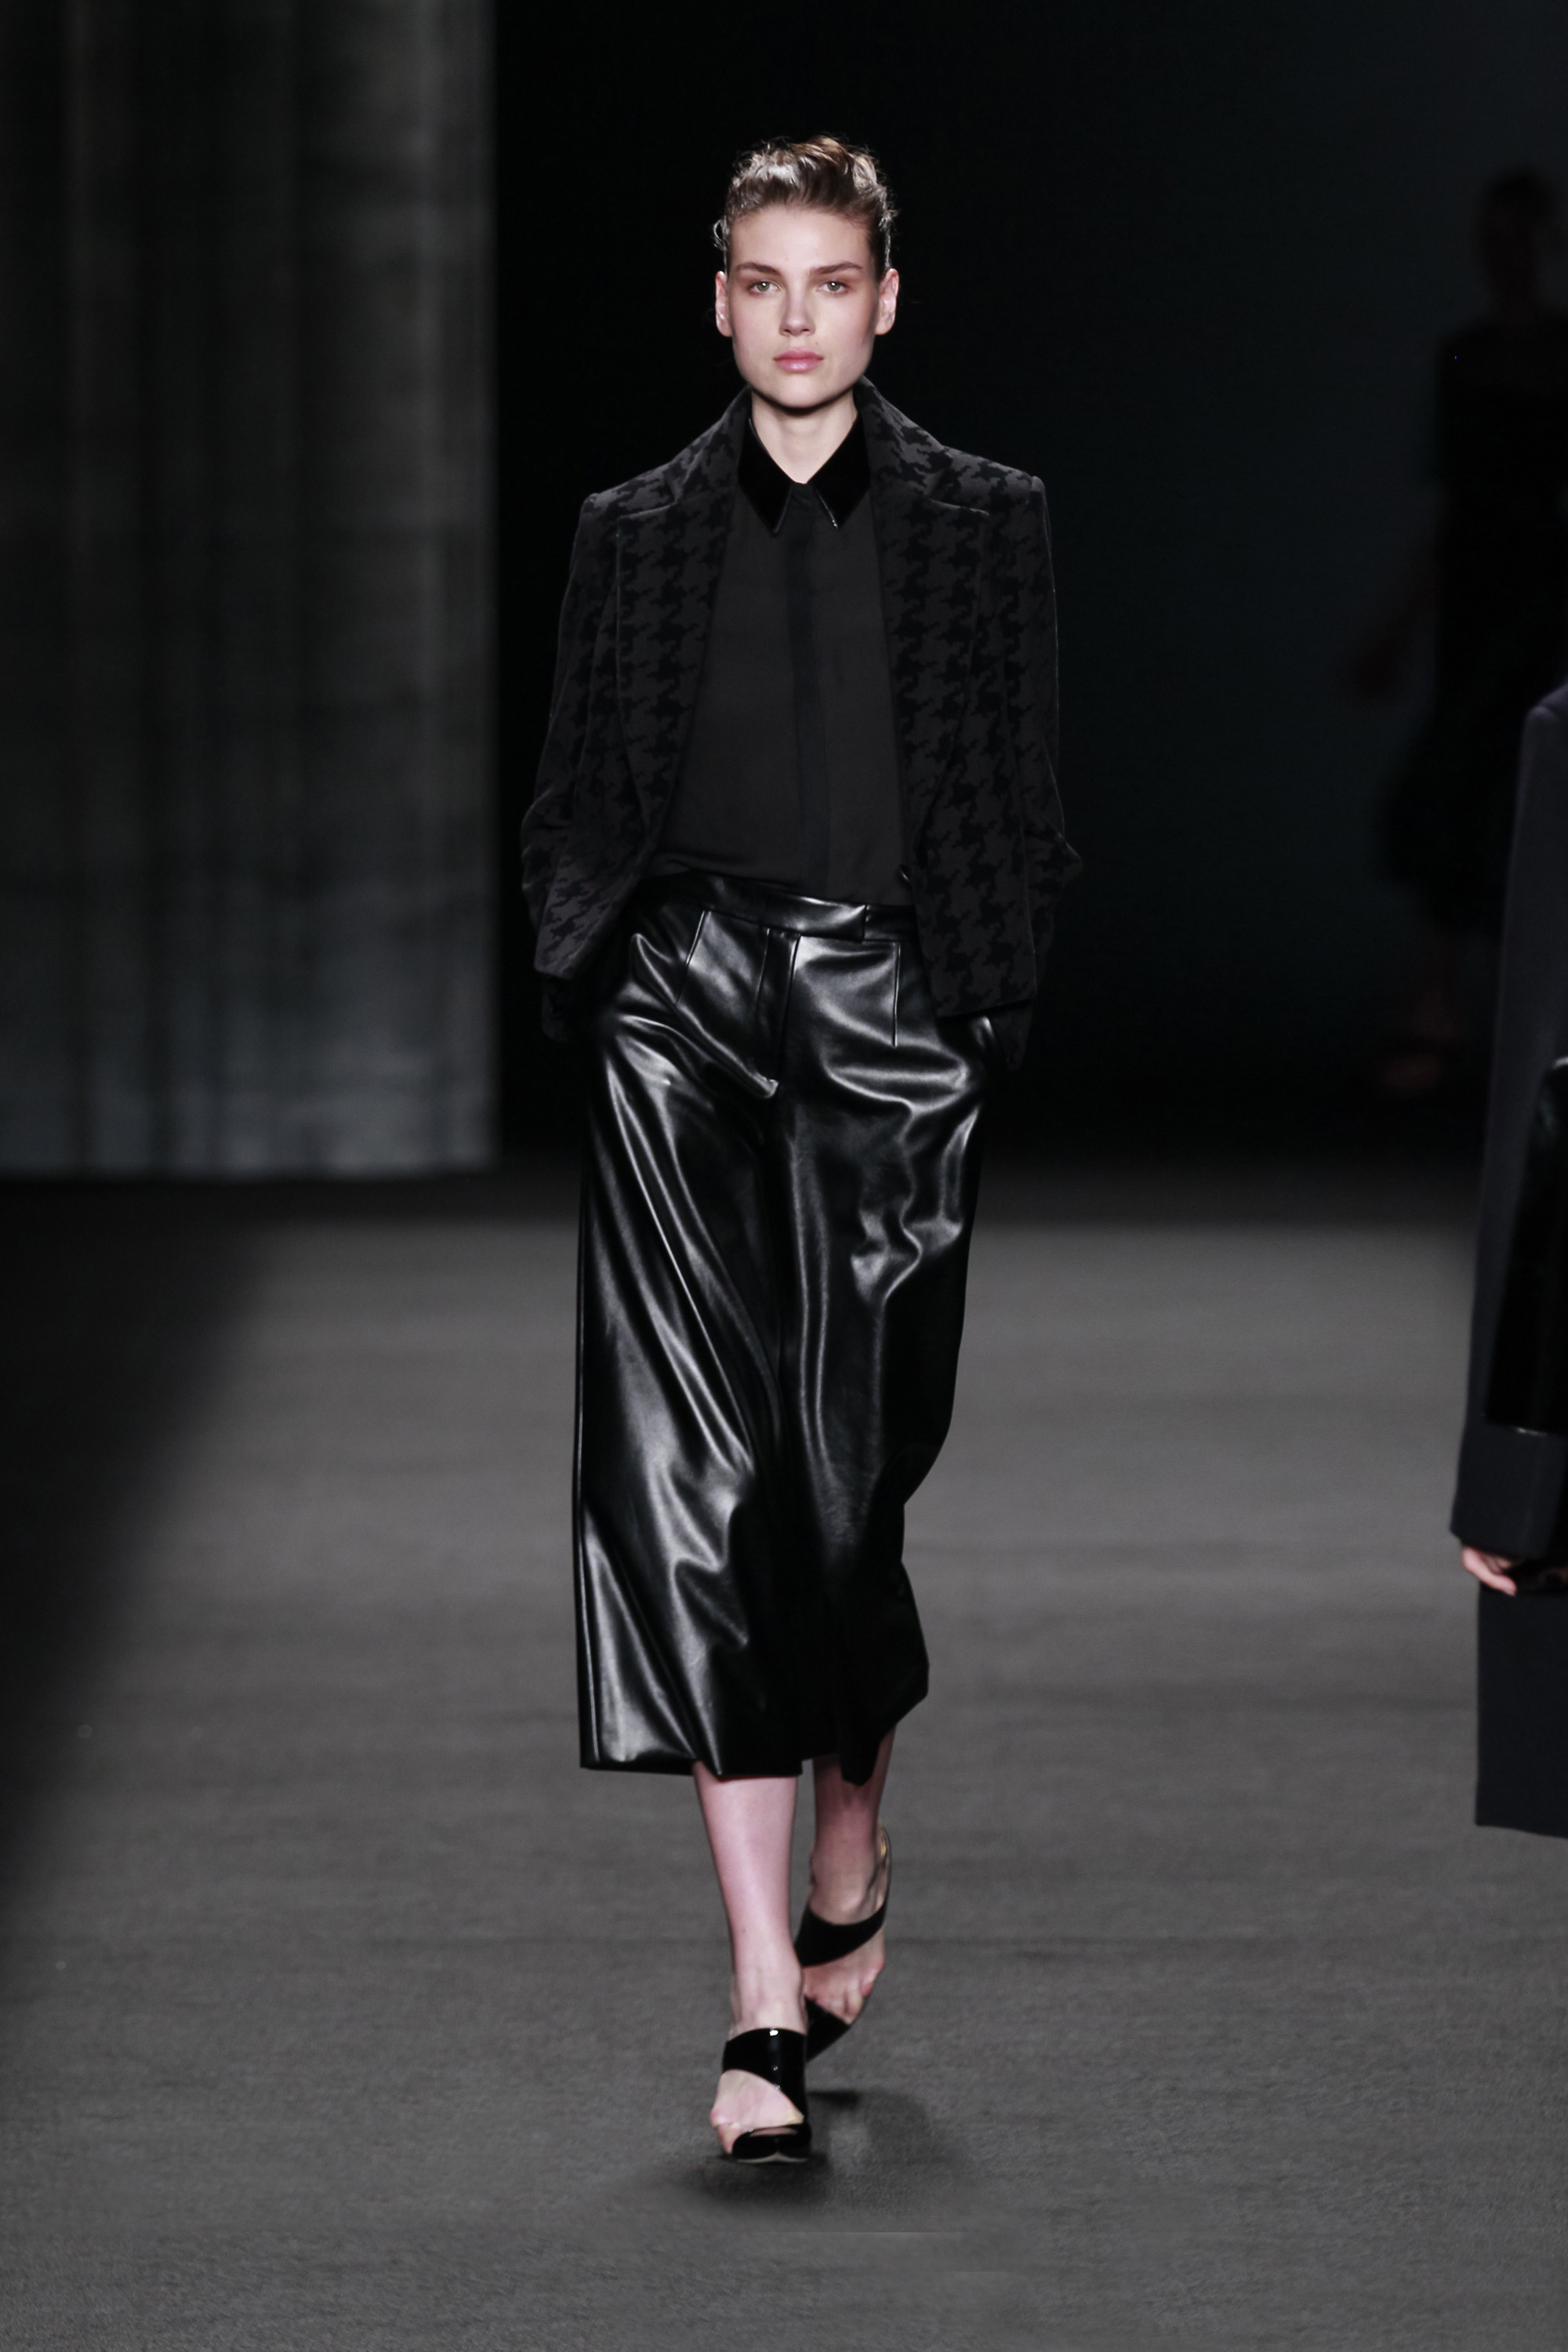 12_fw14dlr_lhuillier_131